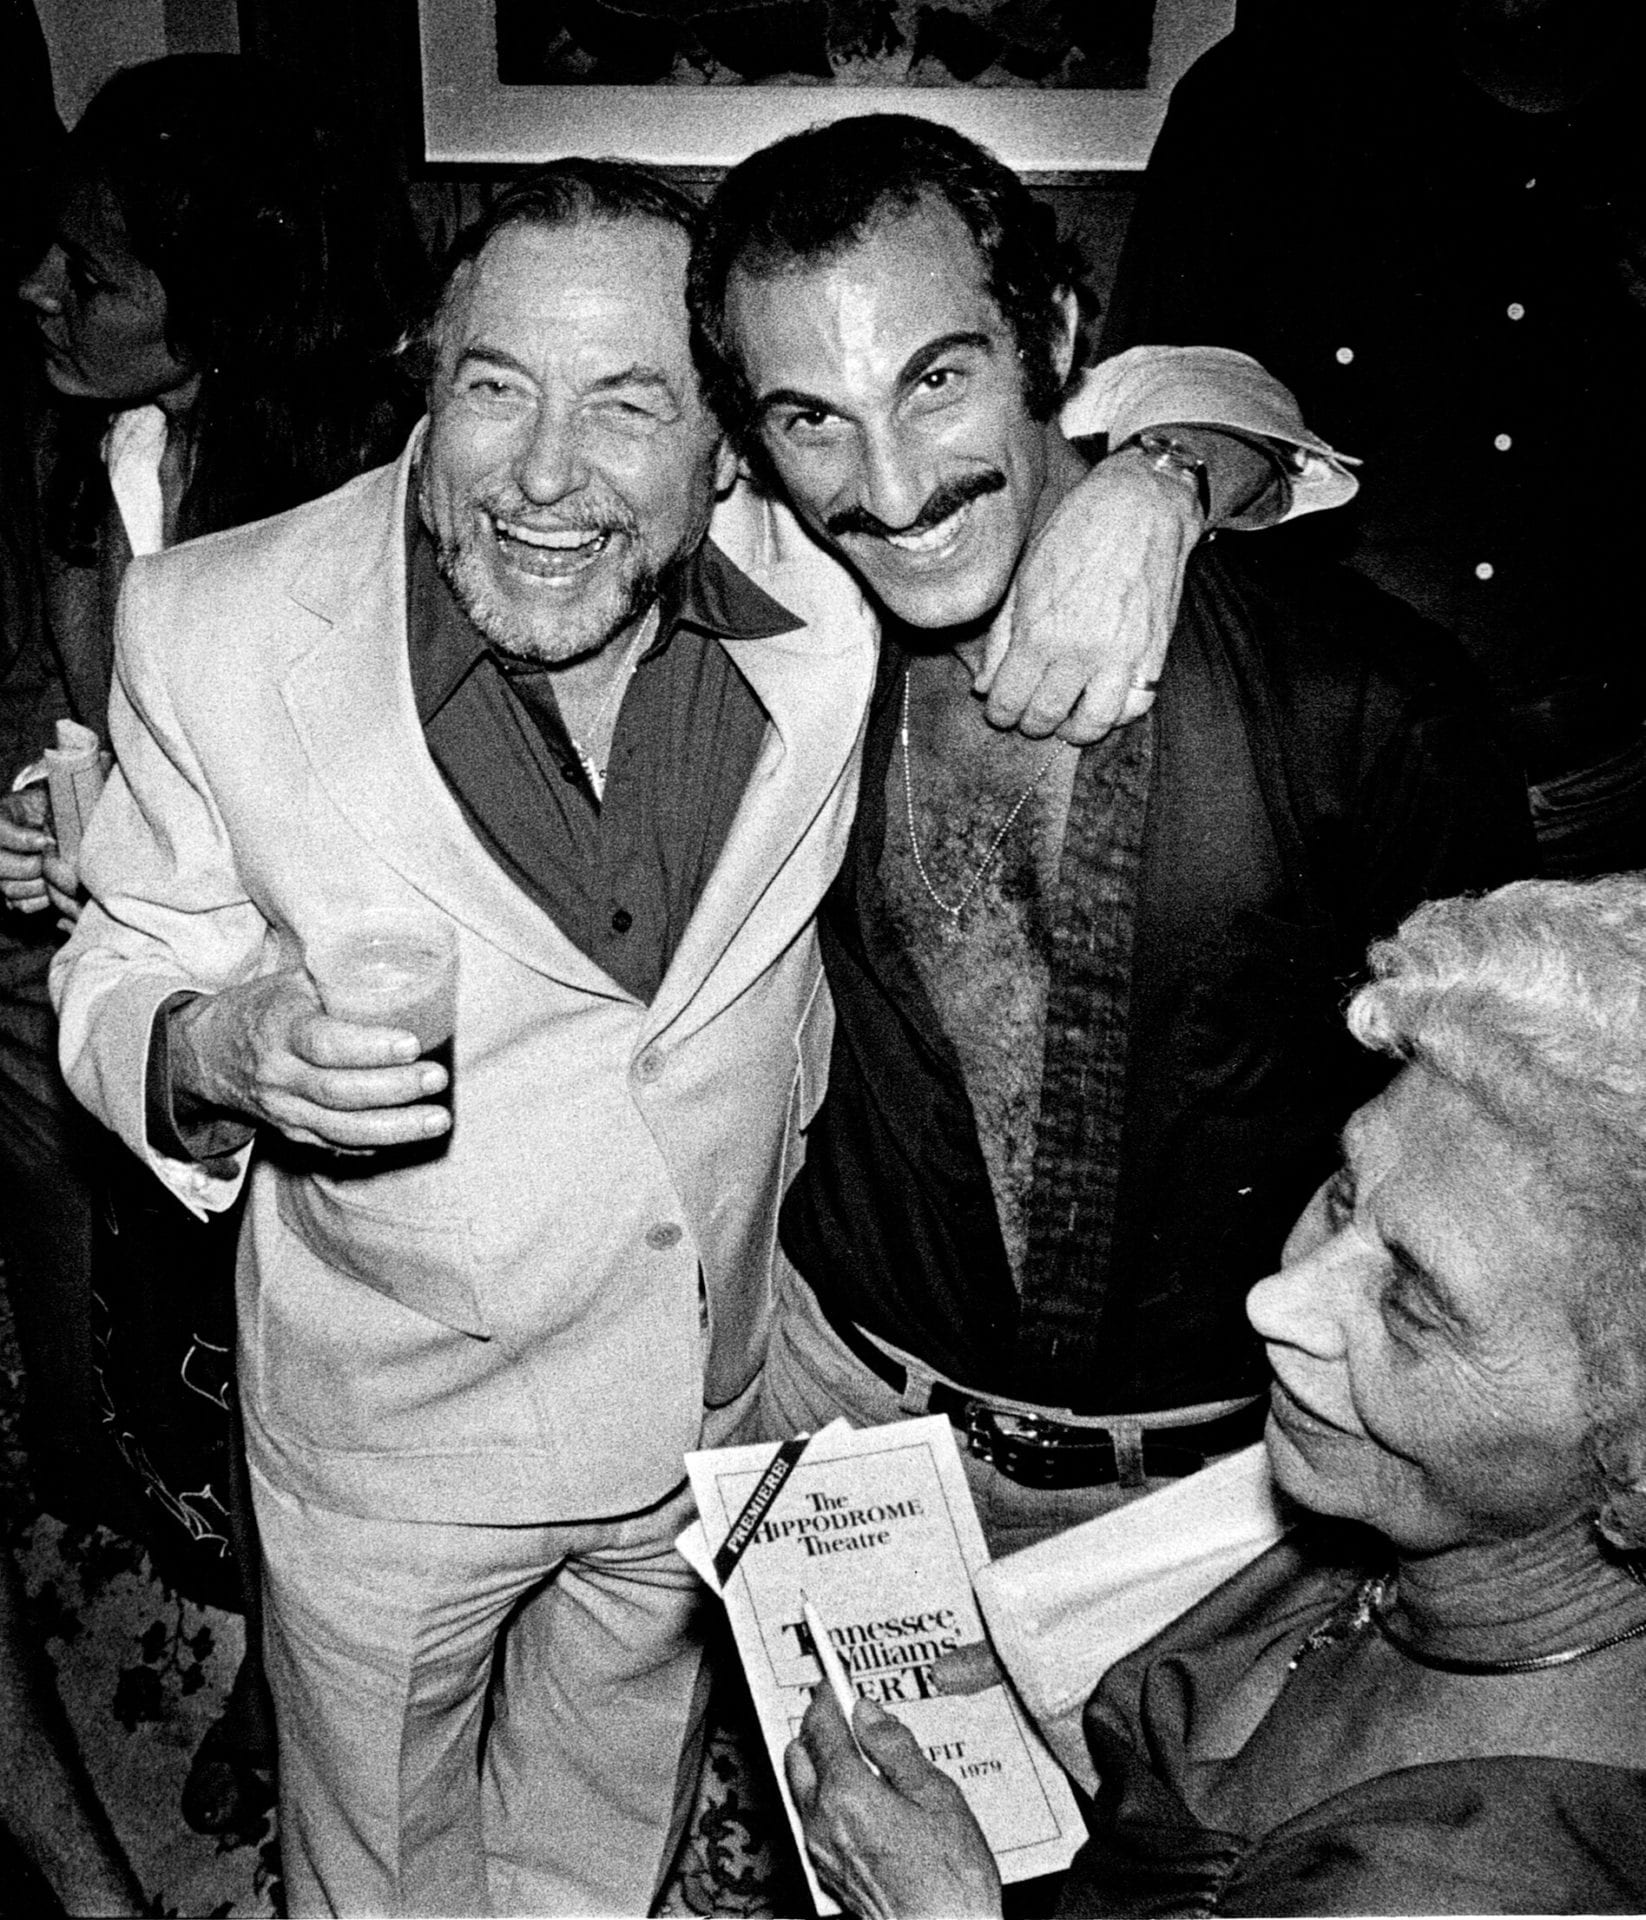 Jon with Tennessee Williams